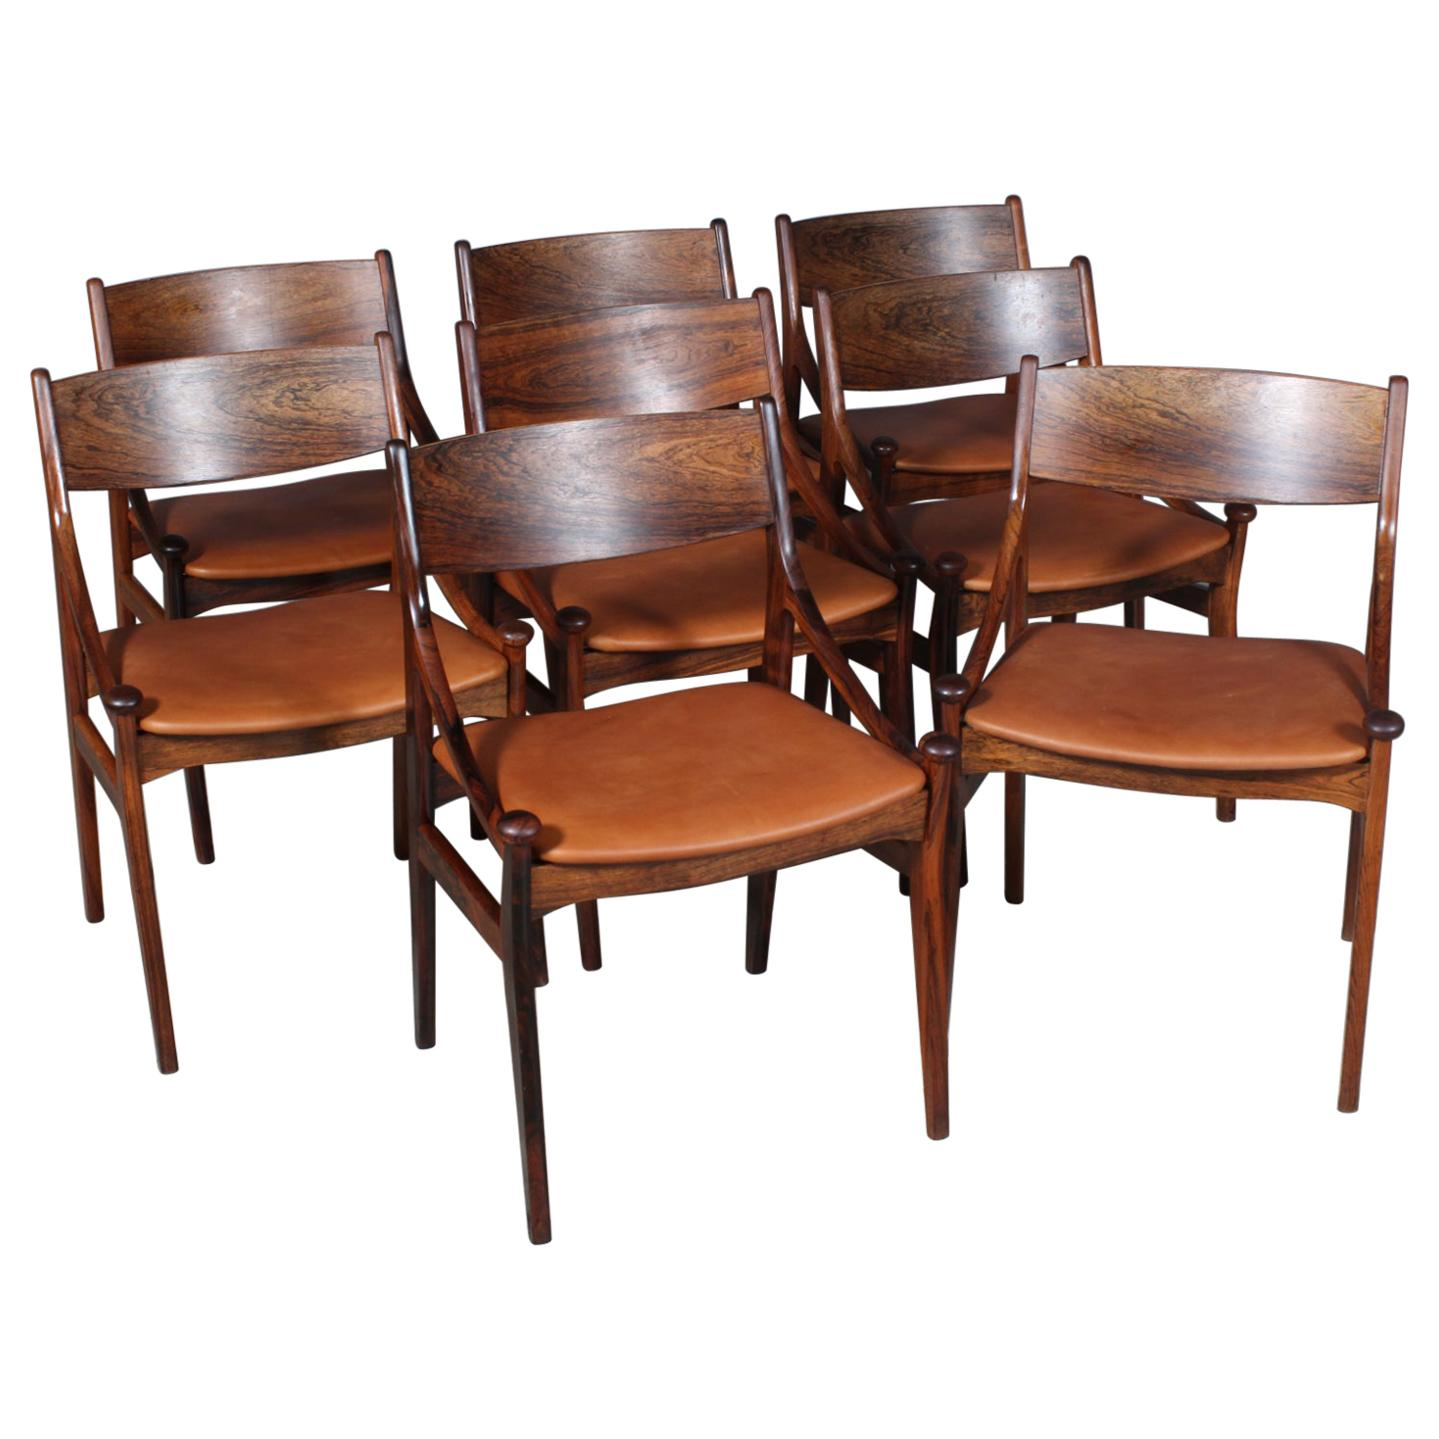 Vestervig Eriksen, Set of Eight Dining Chairs